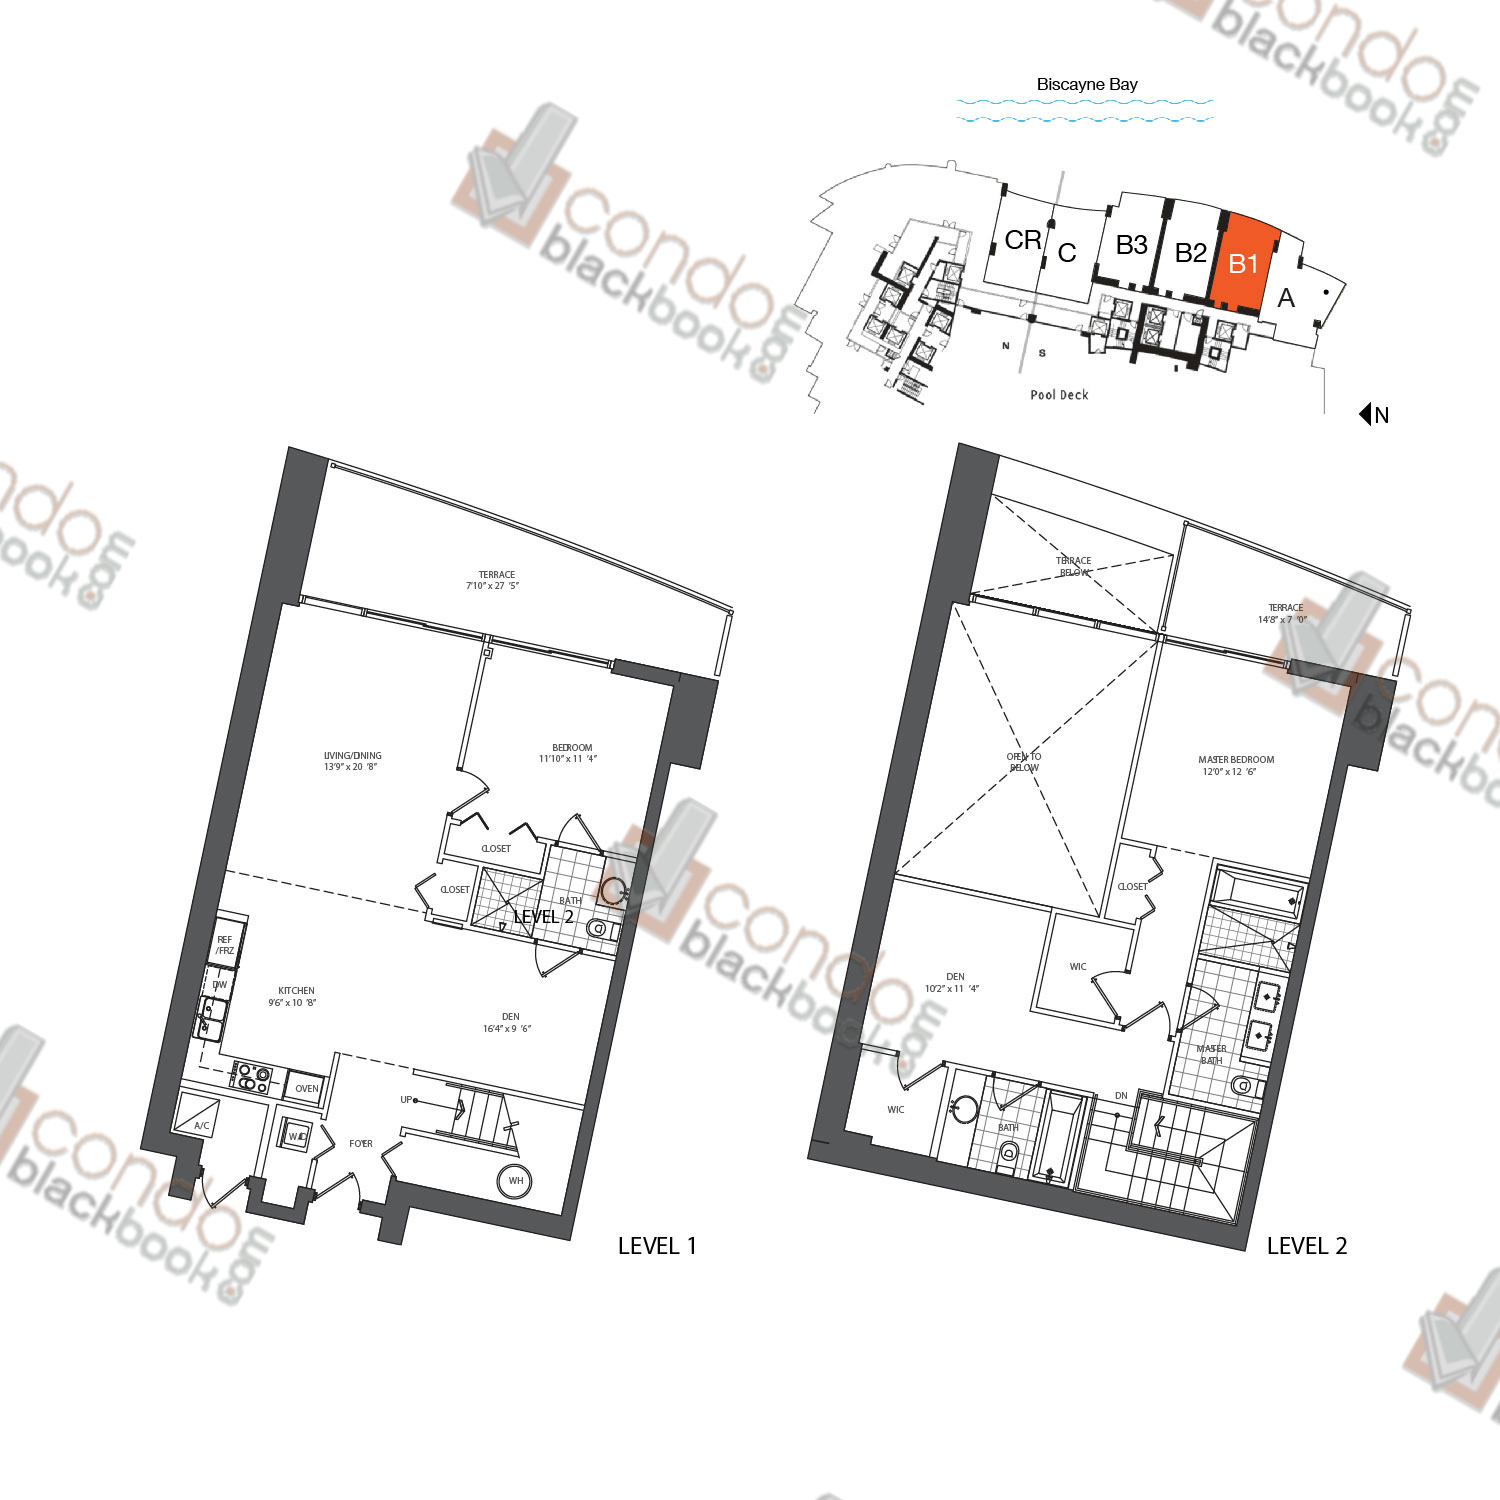 Floor plan for 900 Biscayne Bay Downtown Miami Miami, model TH B1, line 03, 2/3+DEN bedrooms, 1,597 sq ft